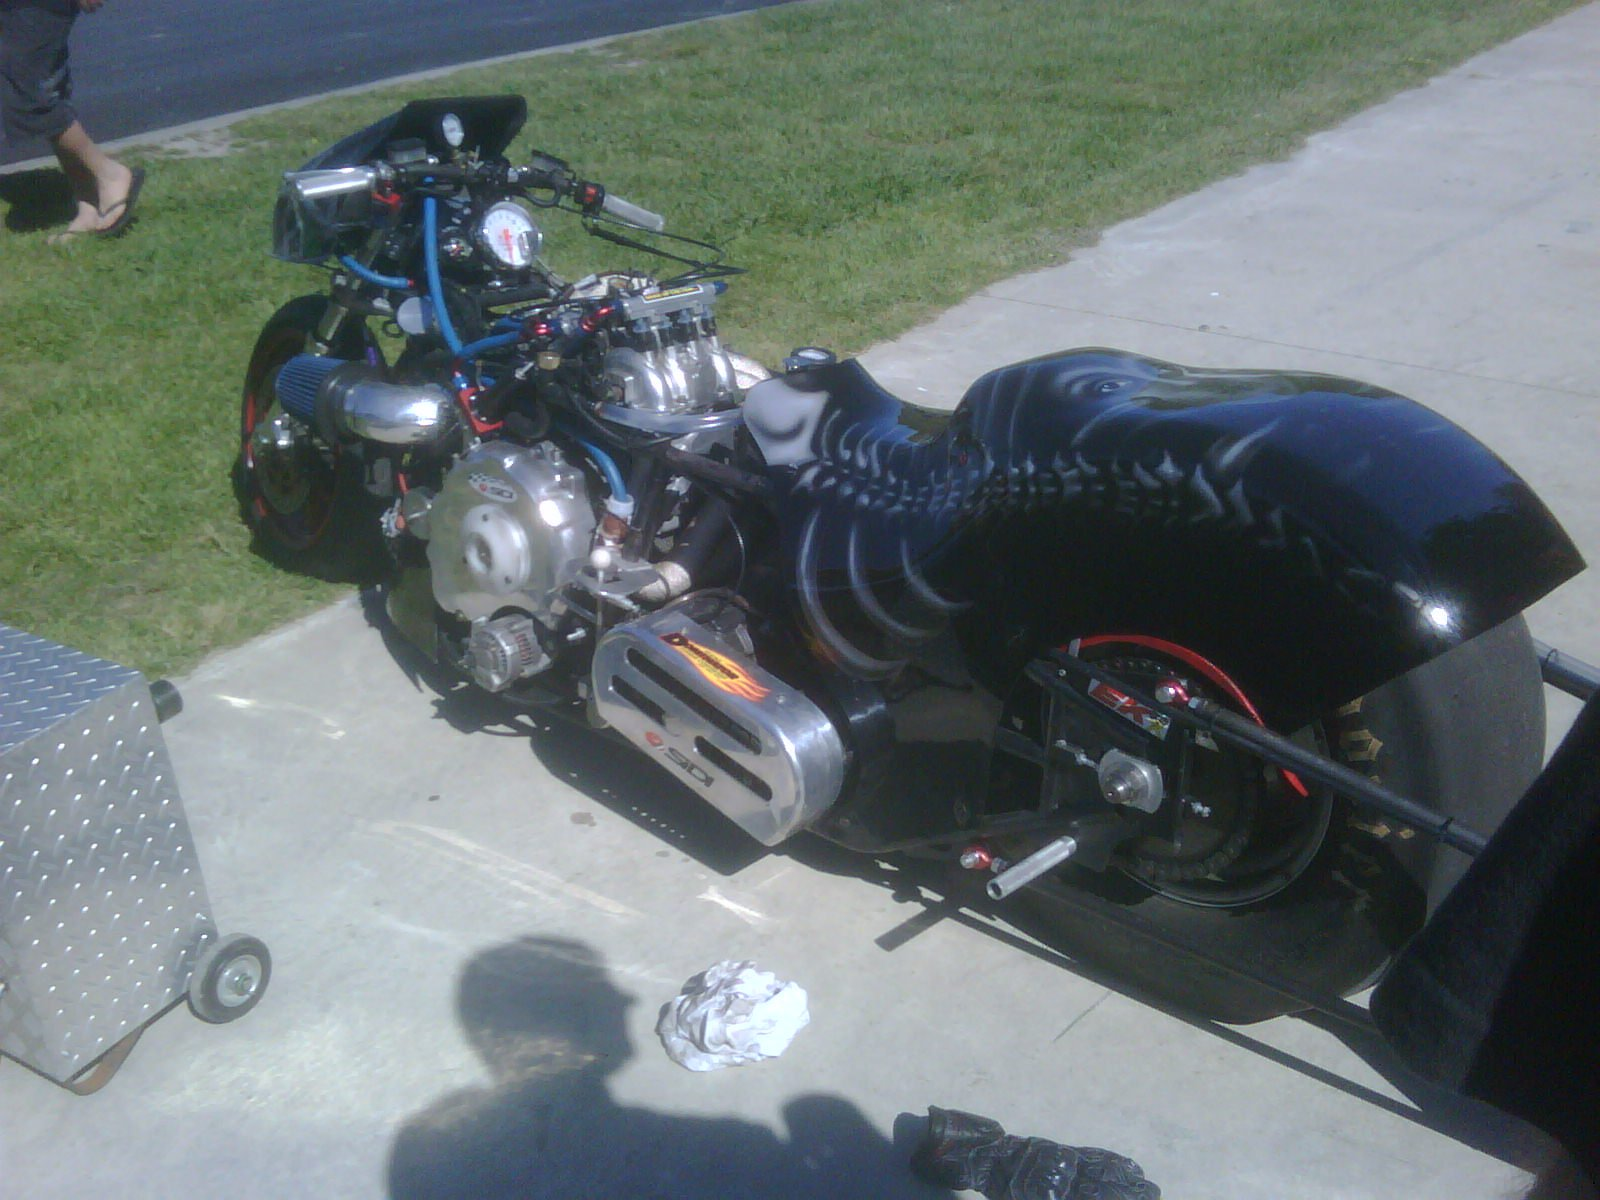 Drag Motorcycle with a 600 HP Twin-turbo Rotary – Engine